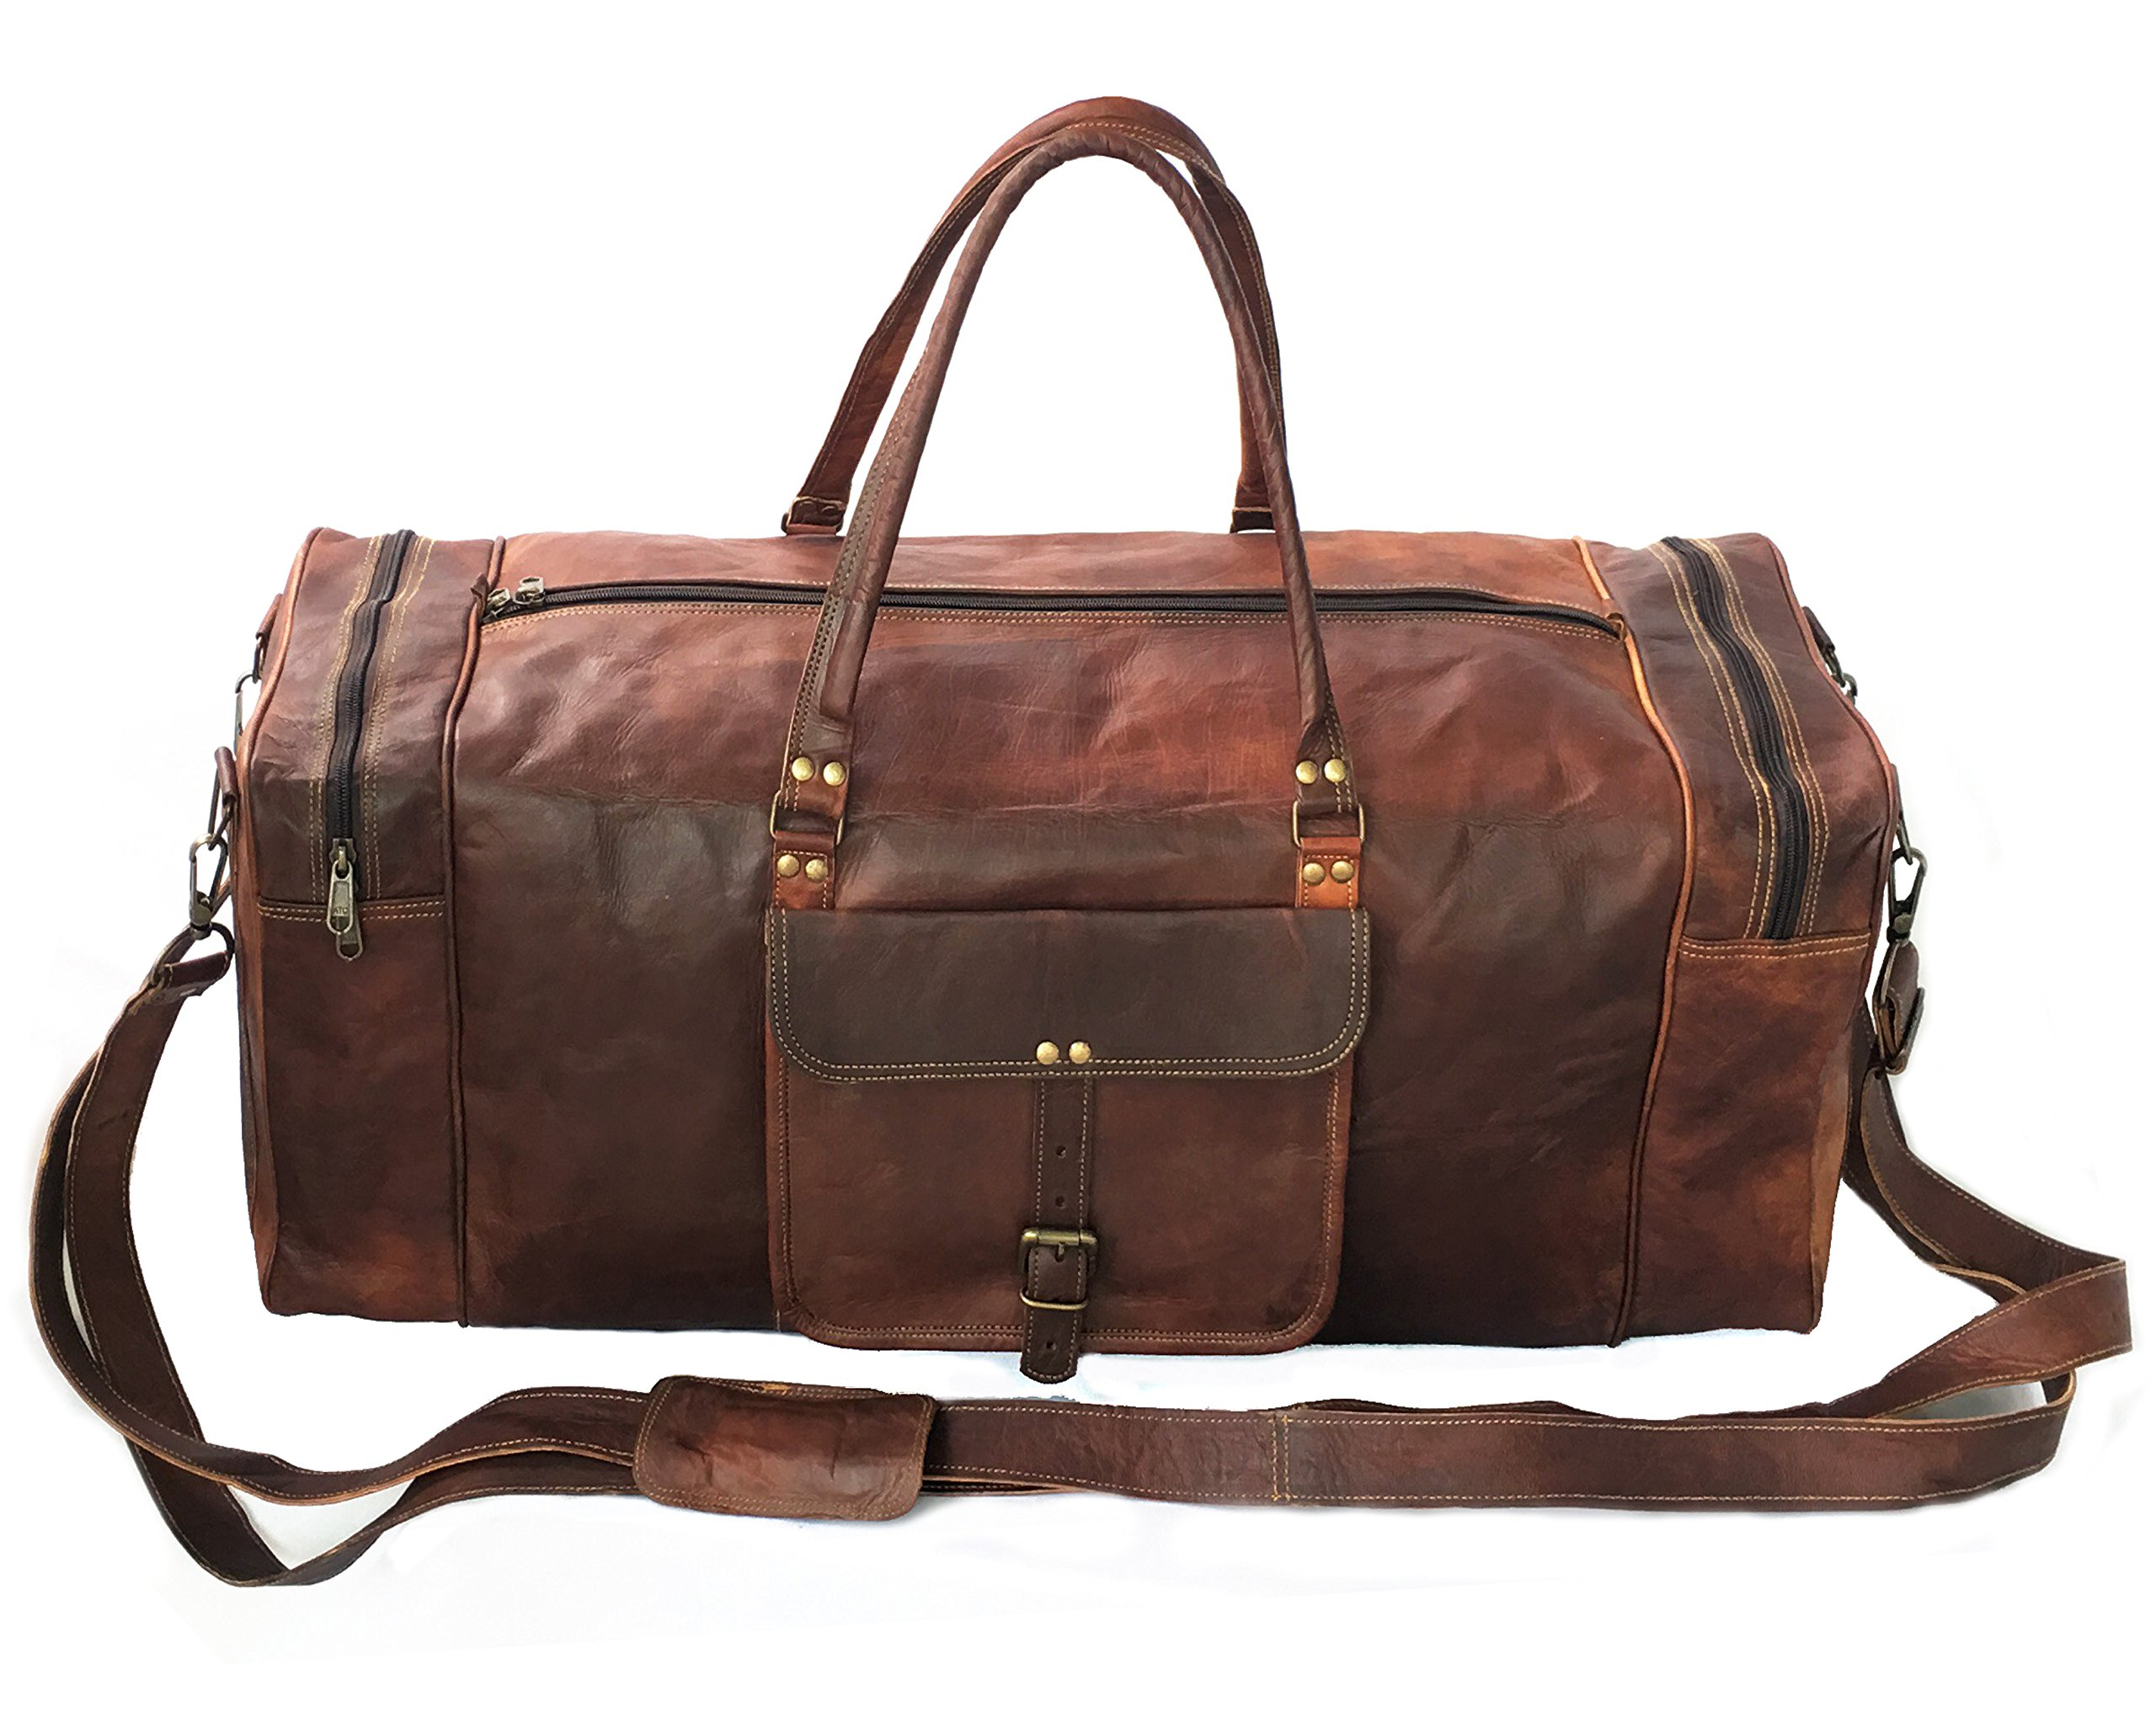 28'' Inch Real Goat Vintage Leather Large Handmade Travel Luggage Bags in Square Big Large Brown bag Carry On By KK's leather by cuero (Image #2)